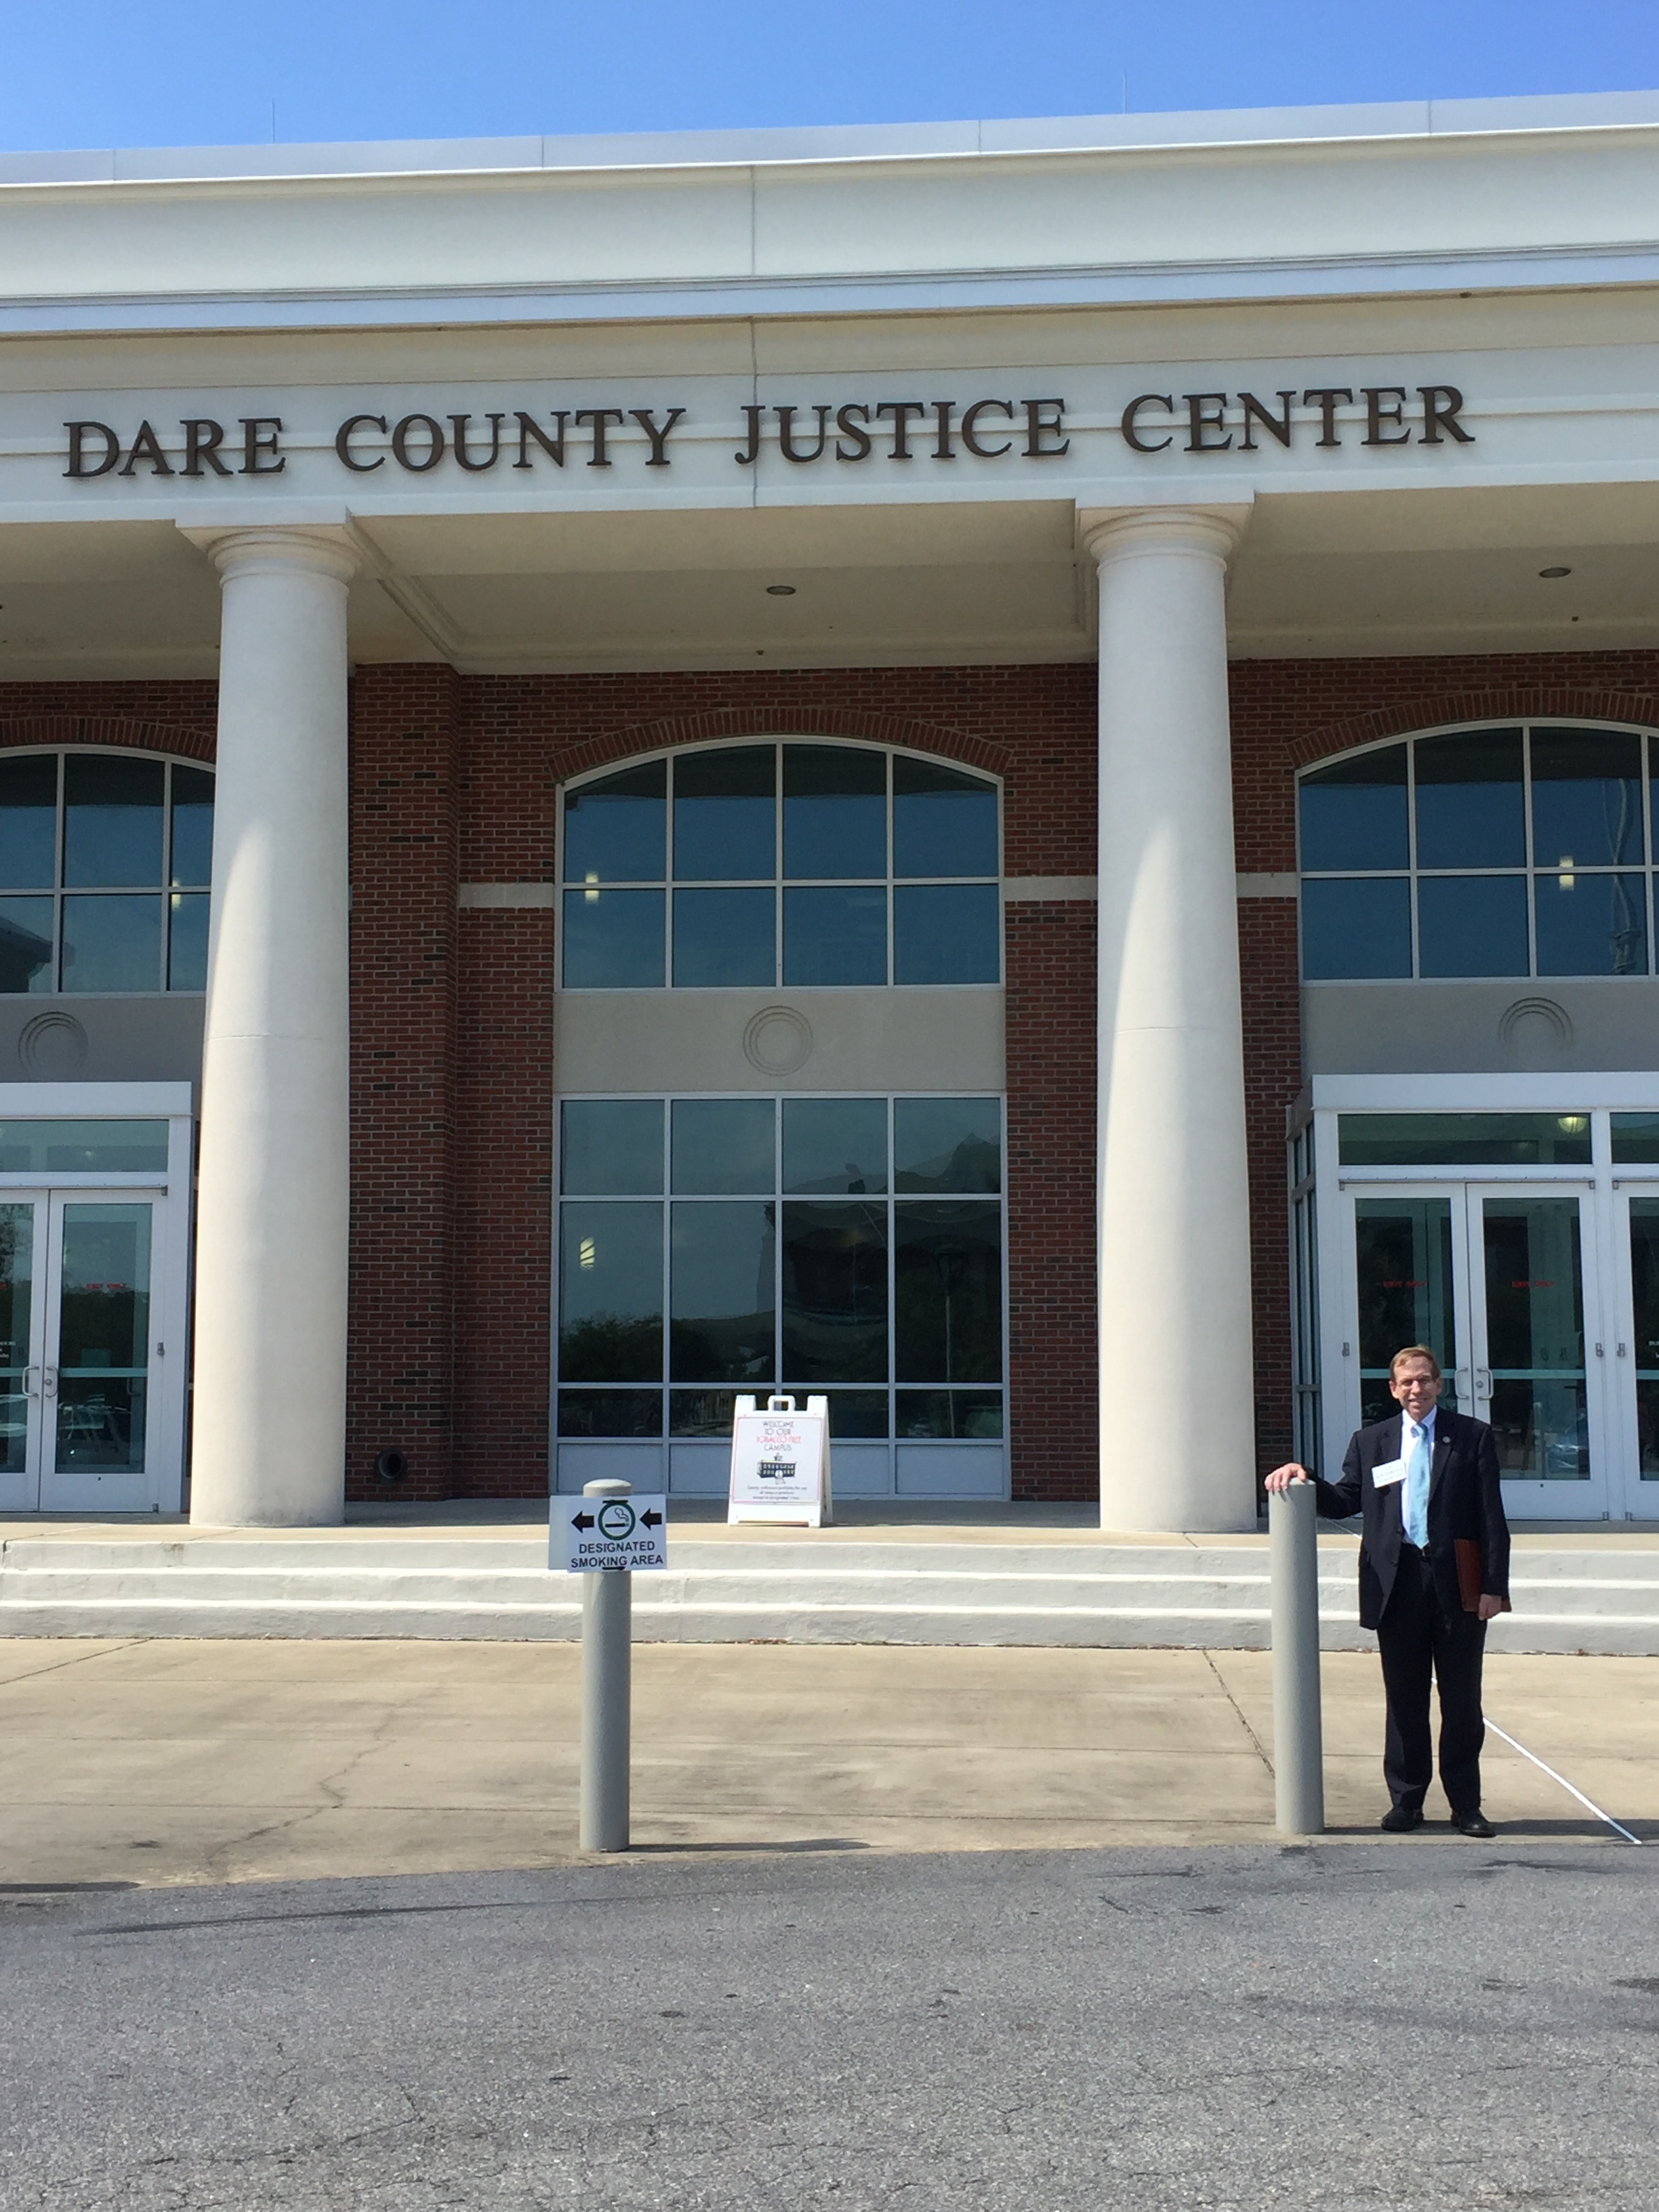 Working the courthouse in Dare County, September 15, 2016.